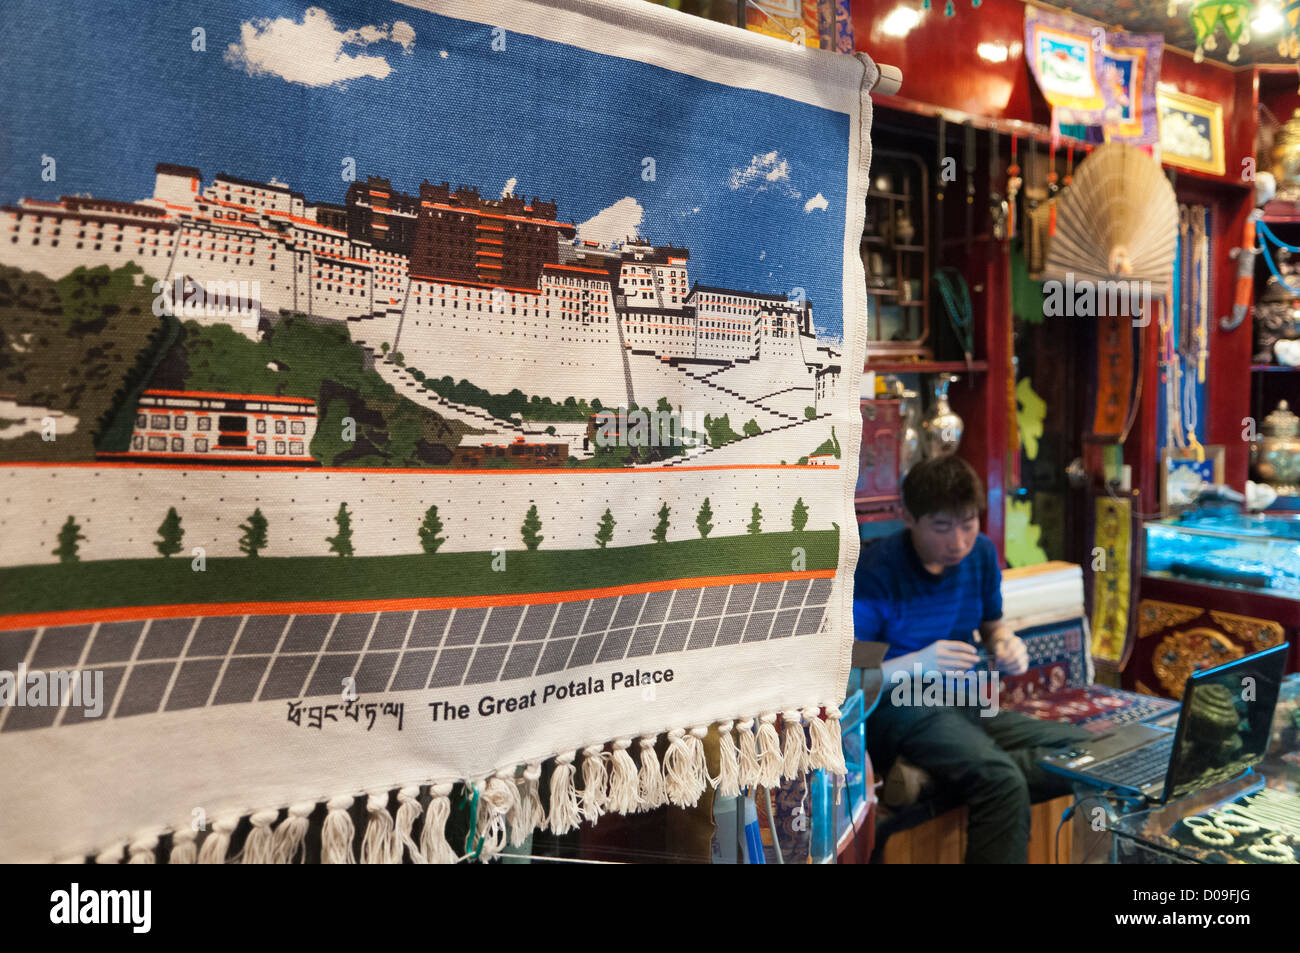 Tapestry of Portala Palace at souvenir shop near Barkhor Square, Lhasa, Tibet - Stock Image